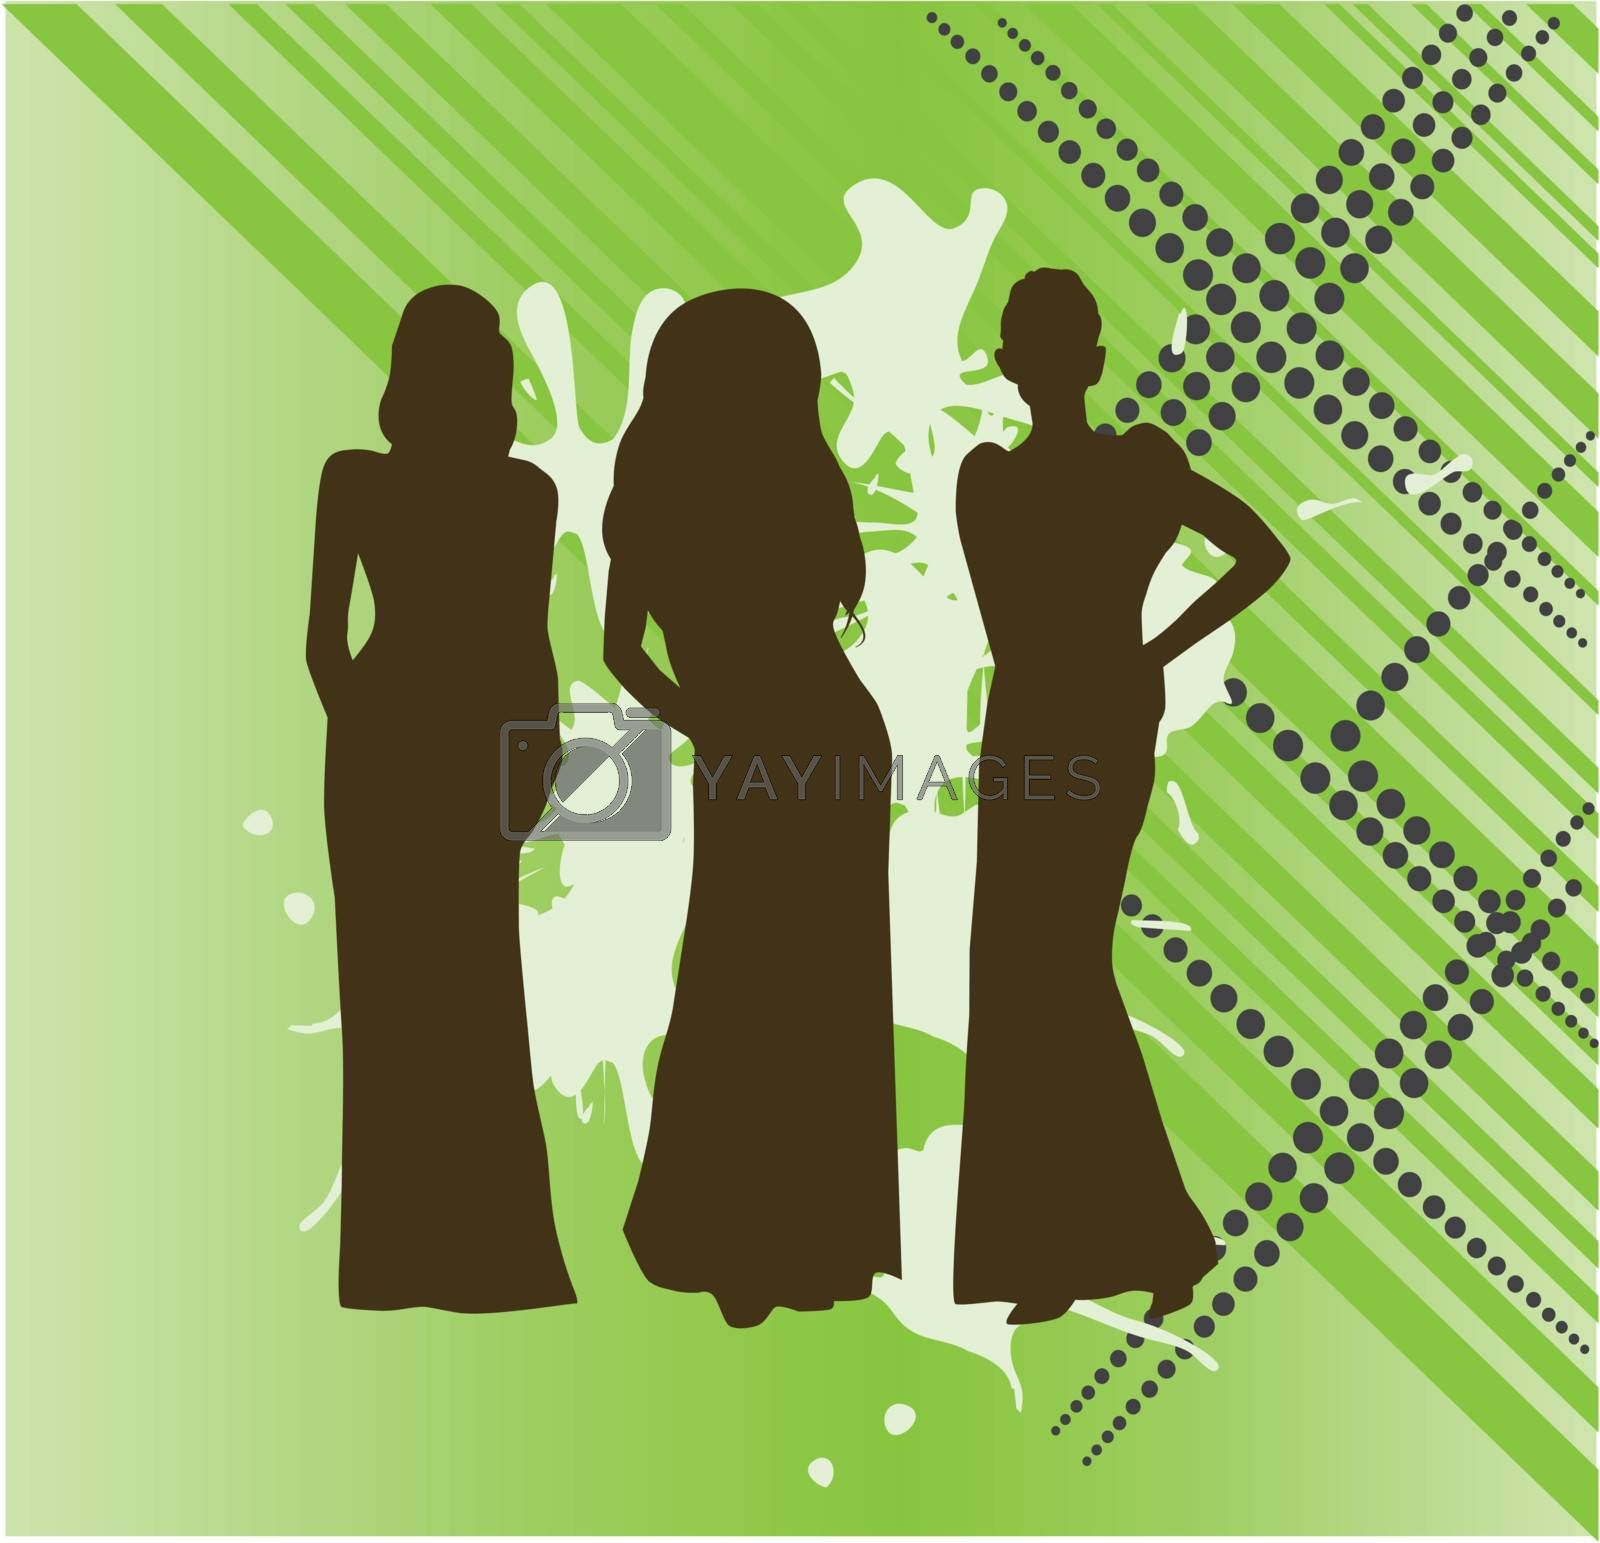 Vector illustration of silhouettes of women